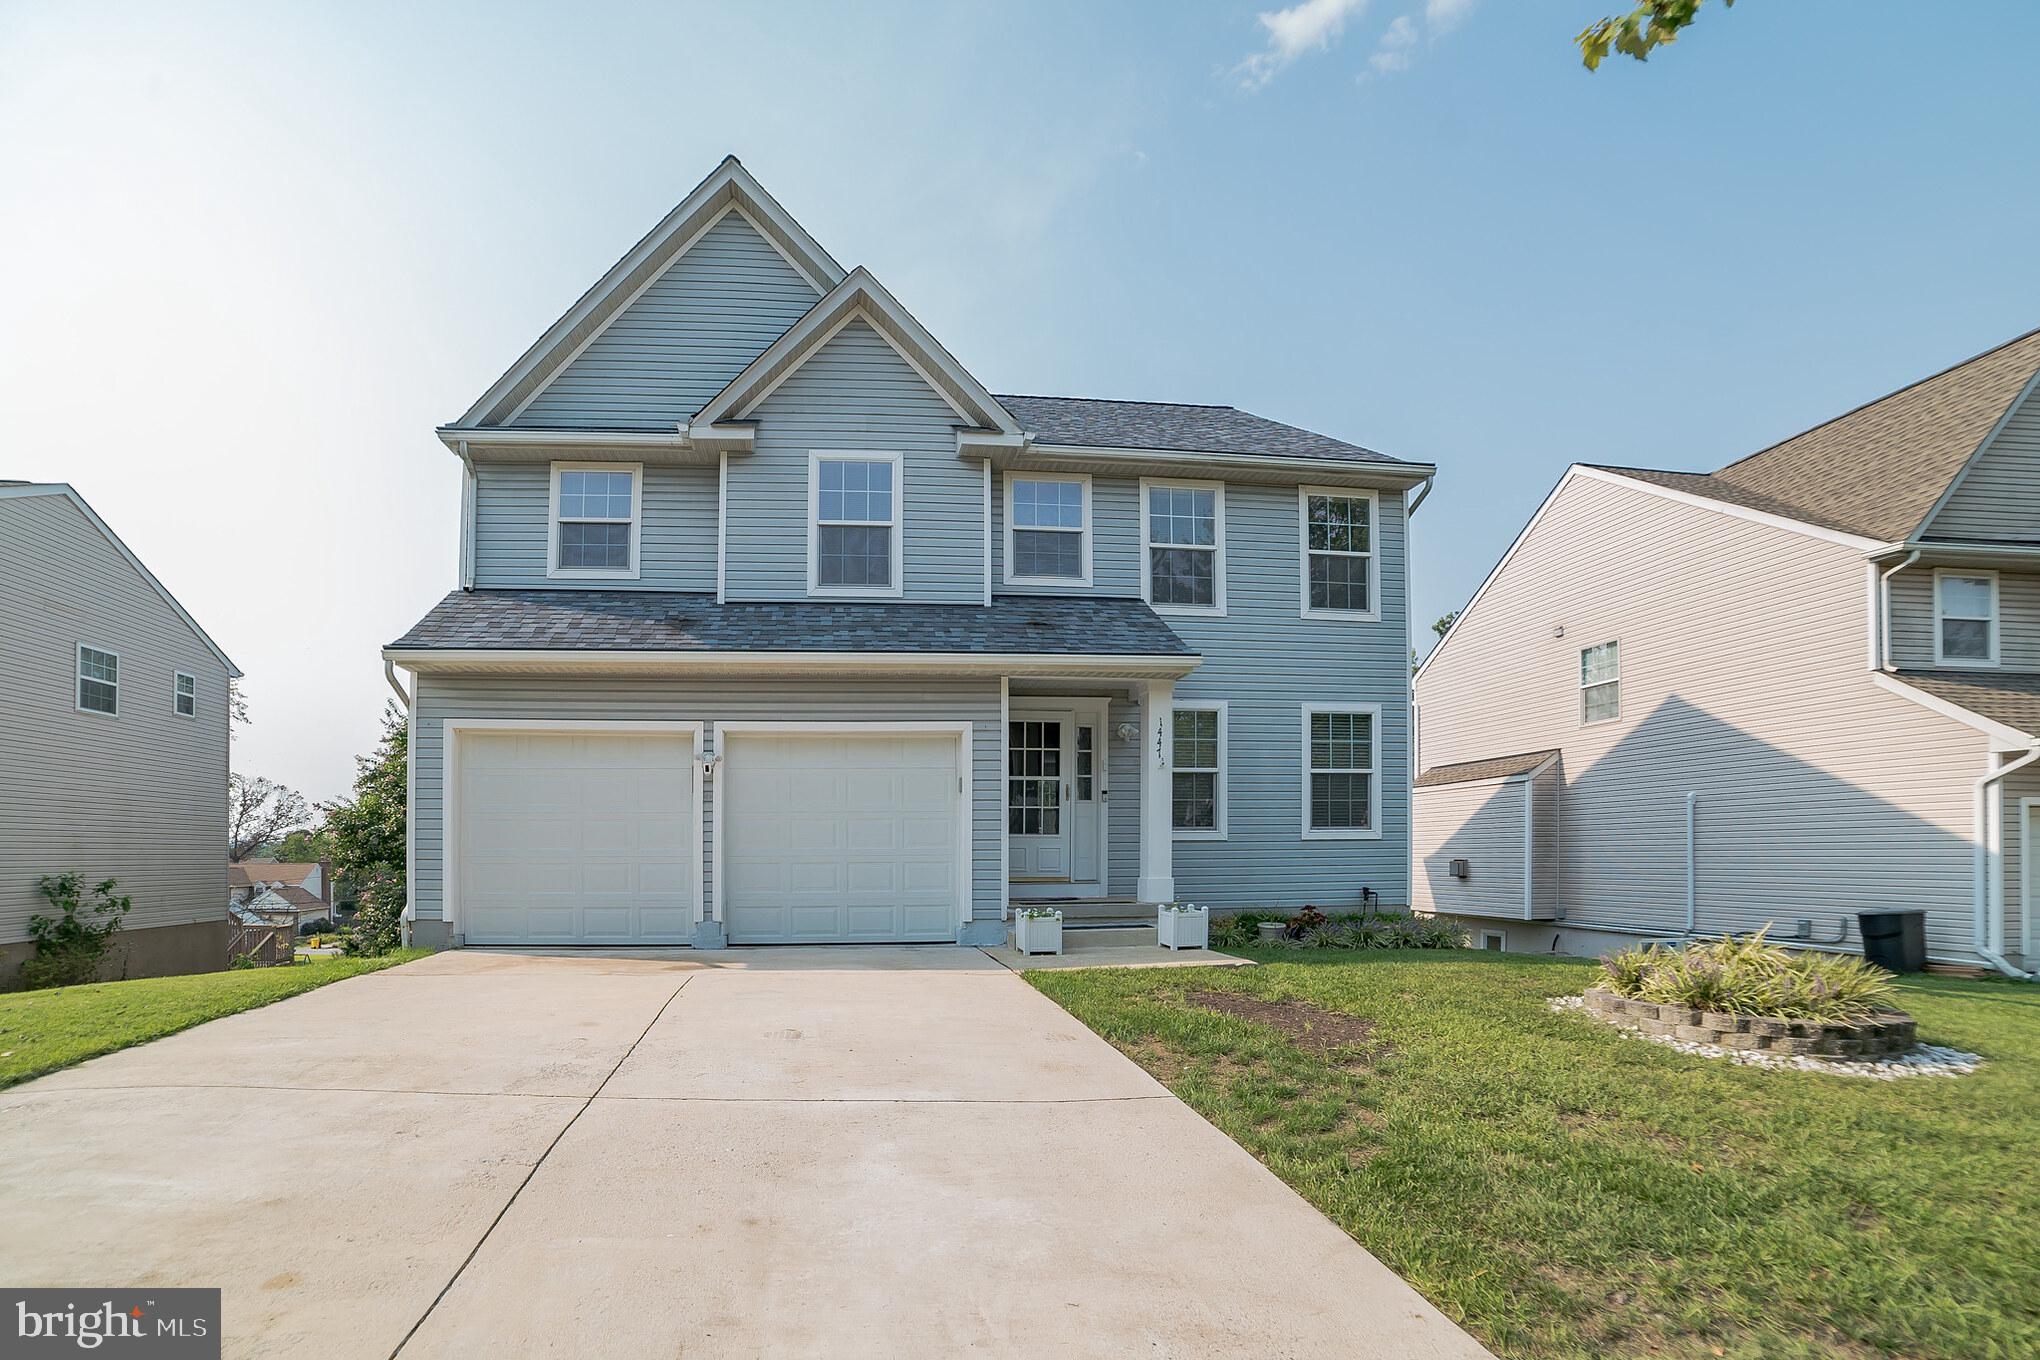 Welcome Home! This beautiful colonial home, has been immaculately maintained and is the one you have